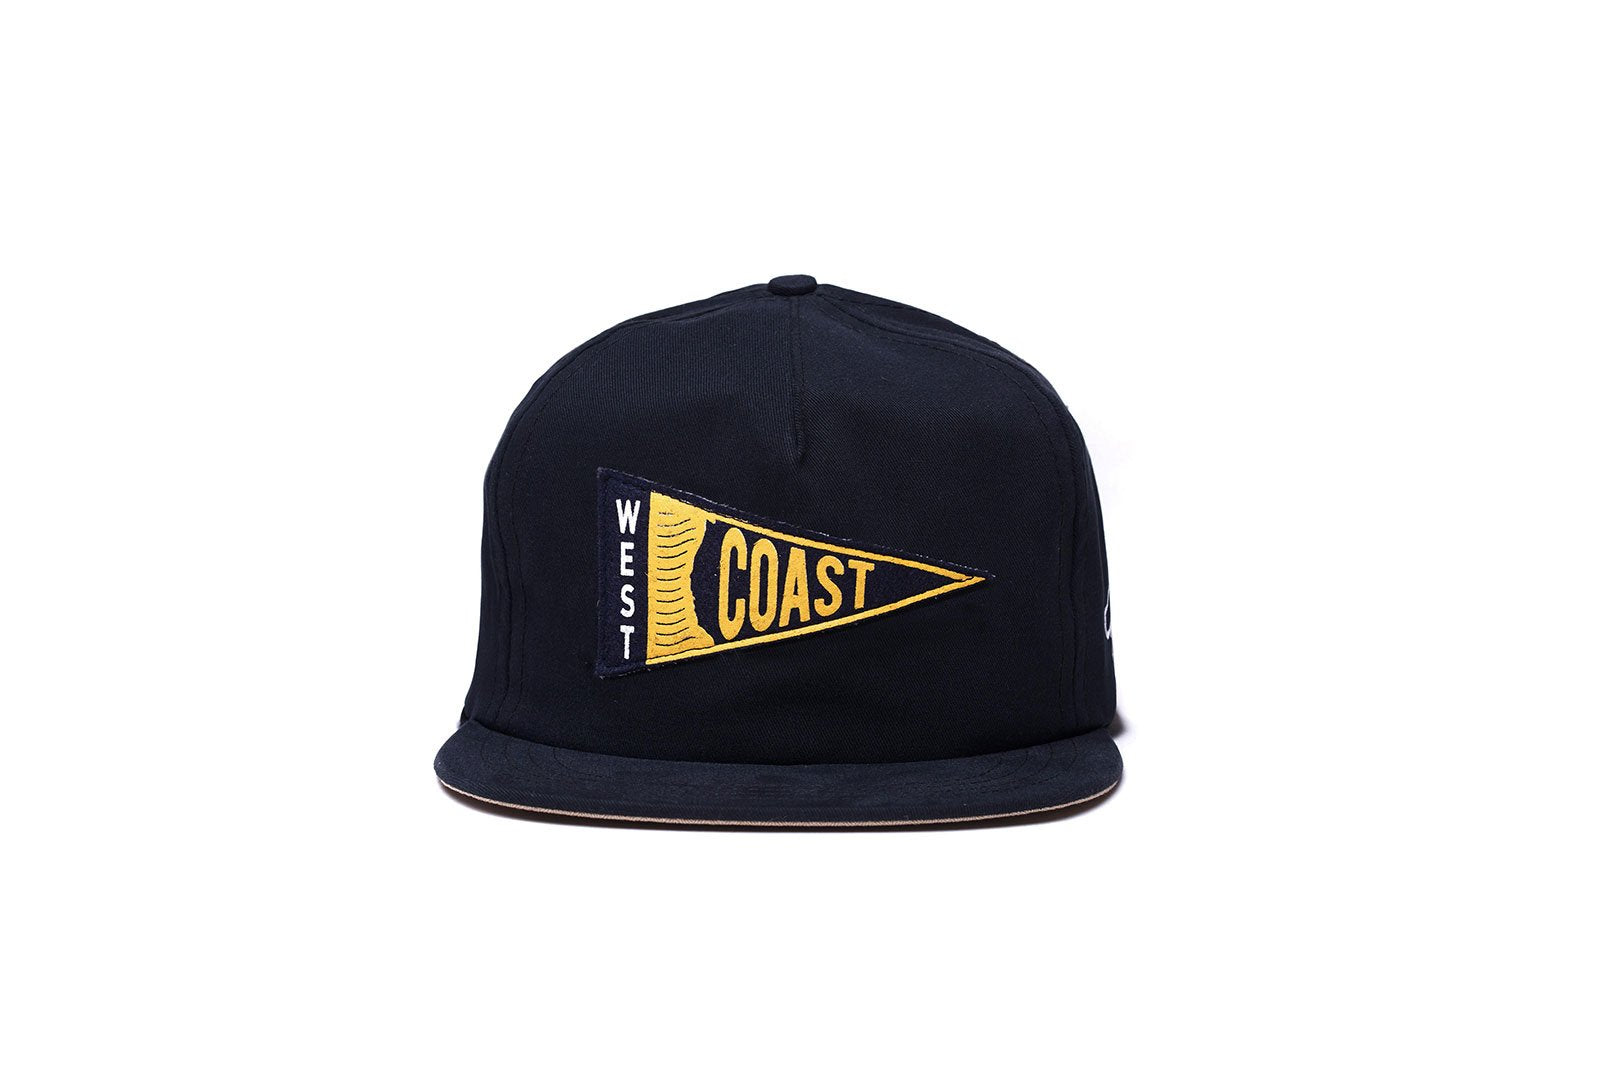 West Coast Pennant Strapback